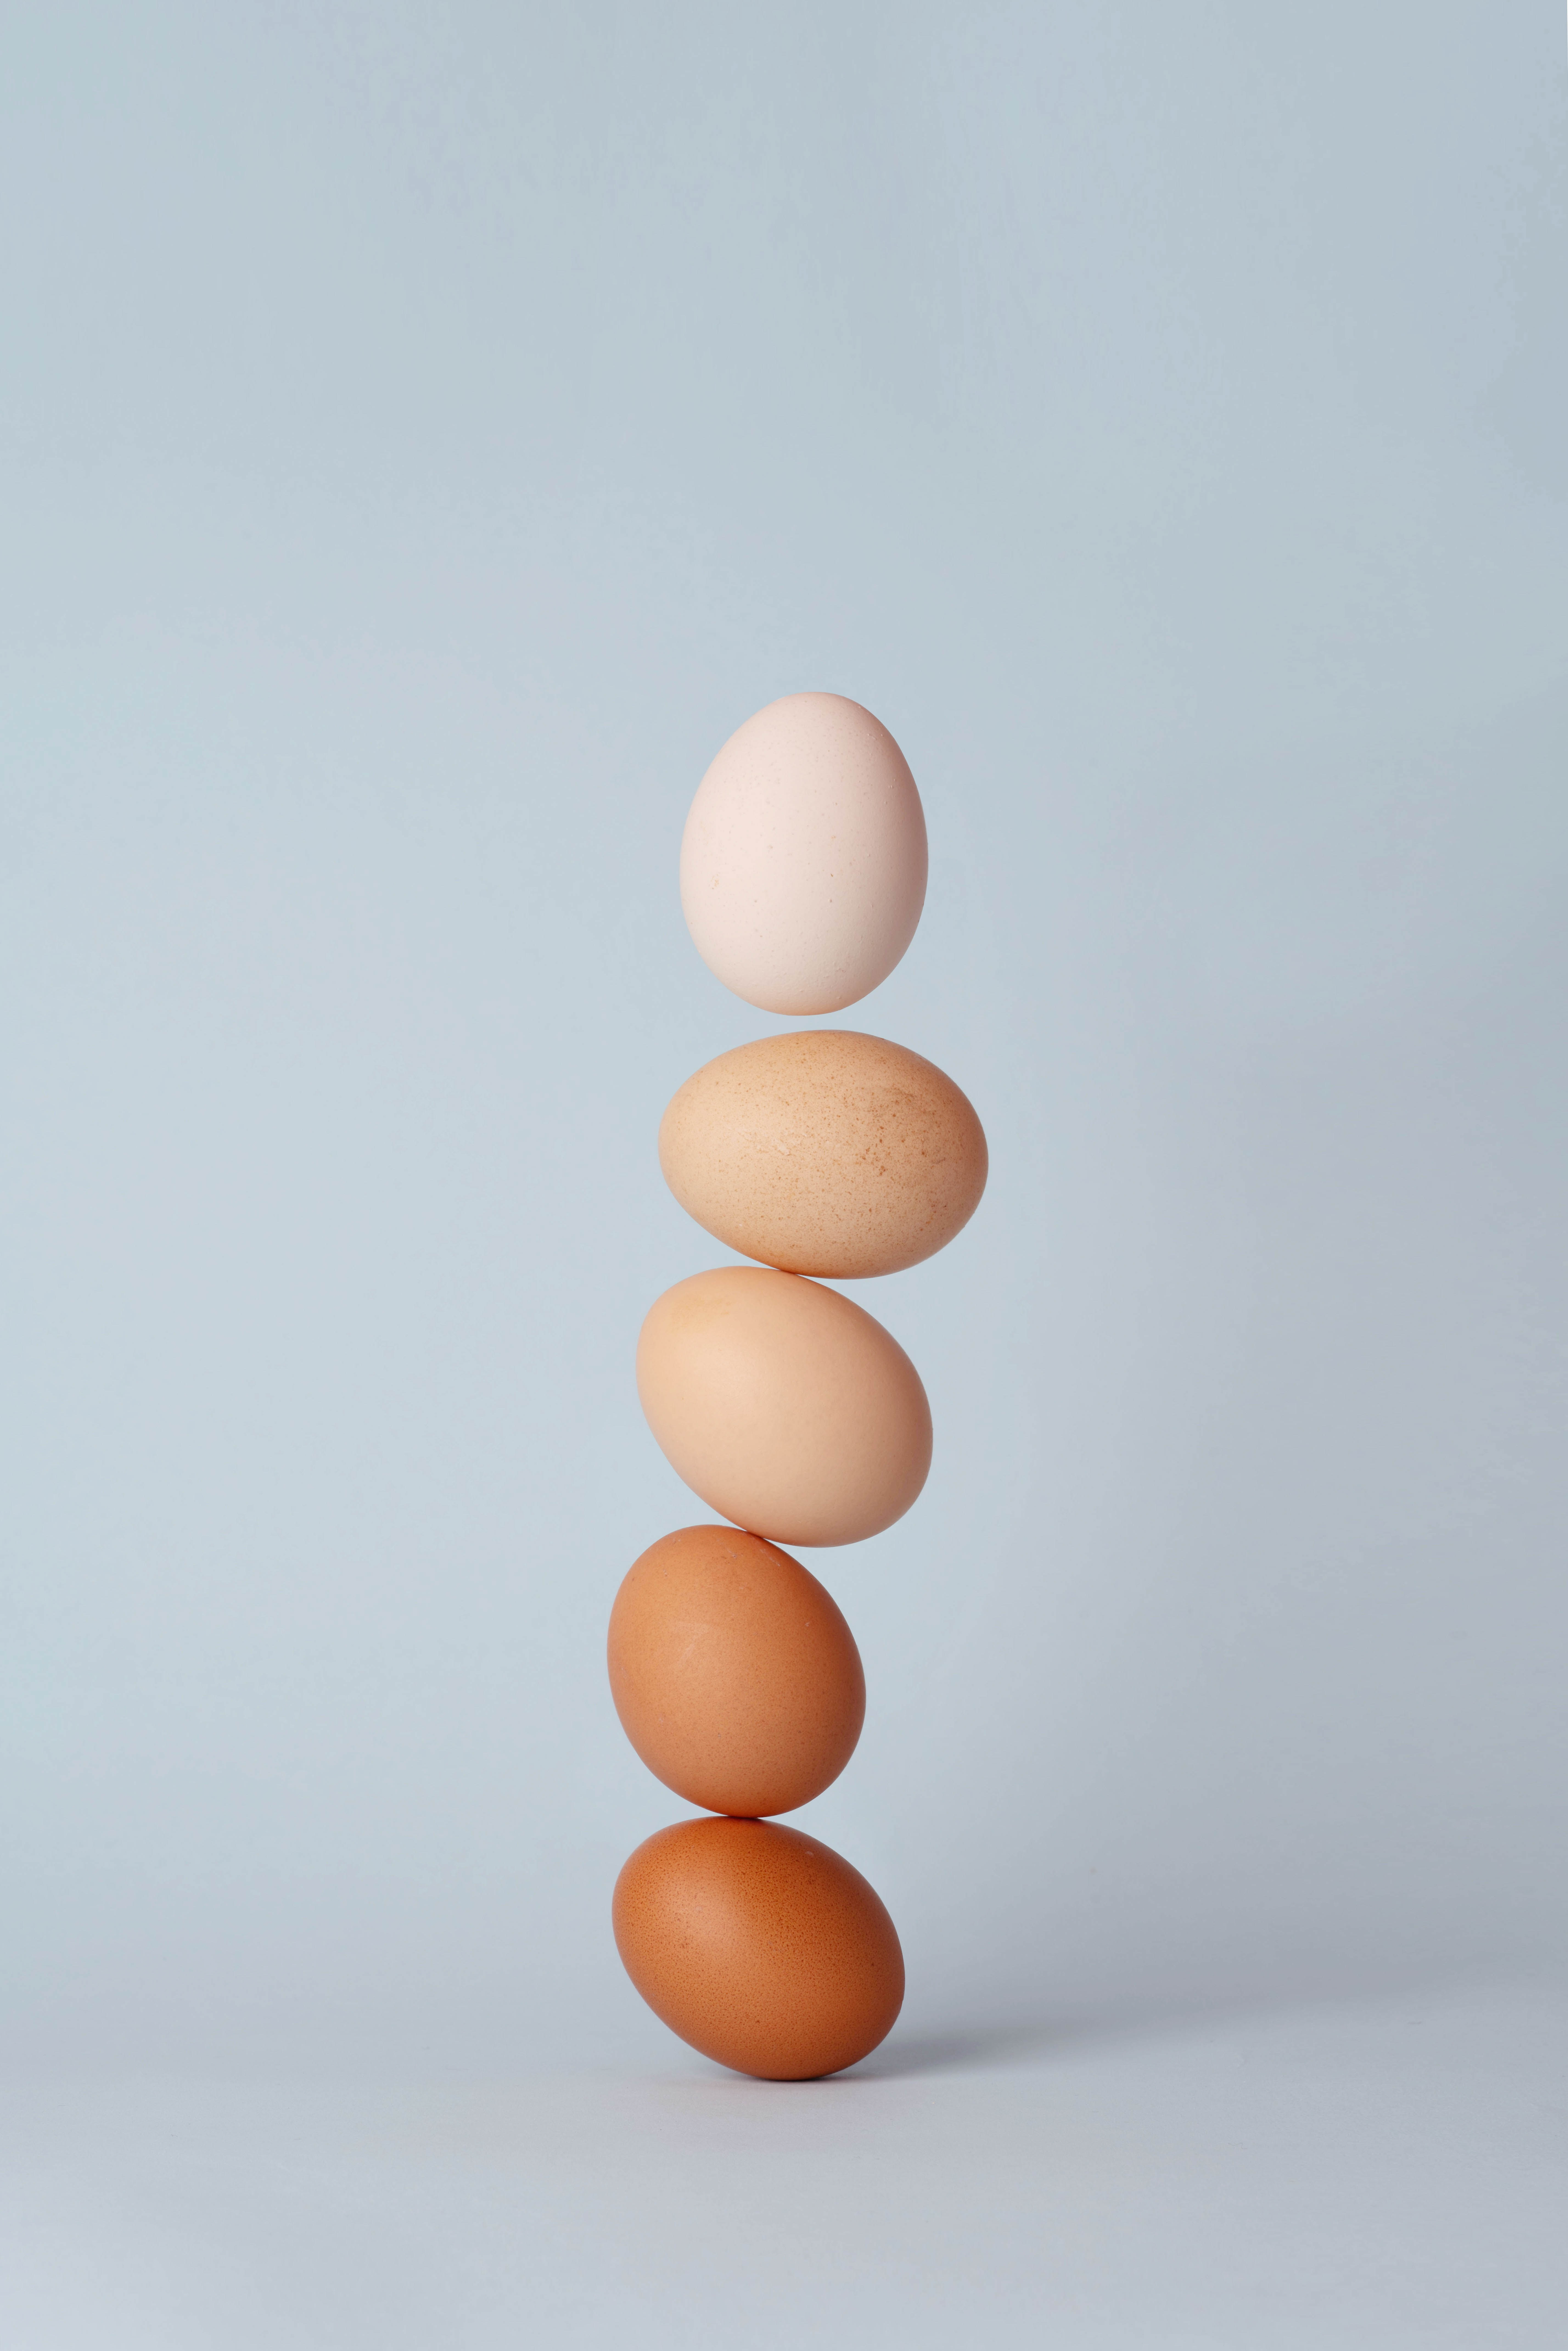 Eggs are a great source of sulfur